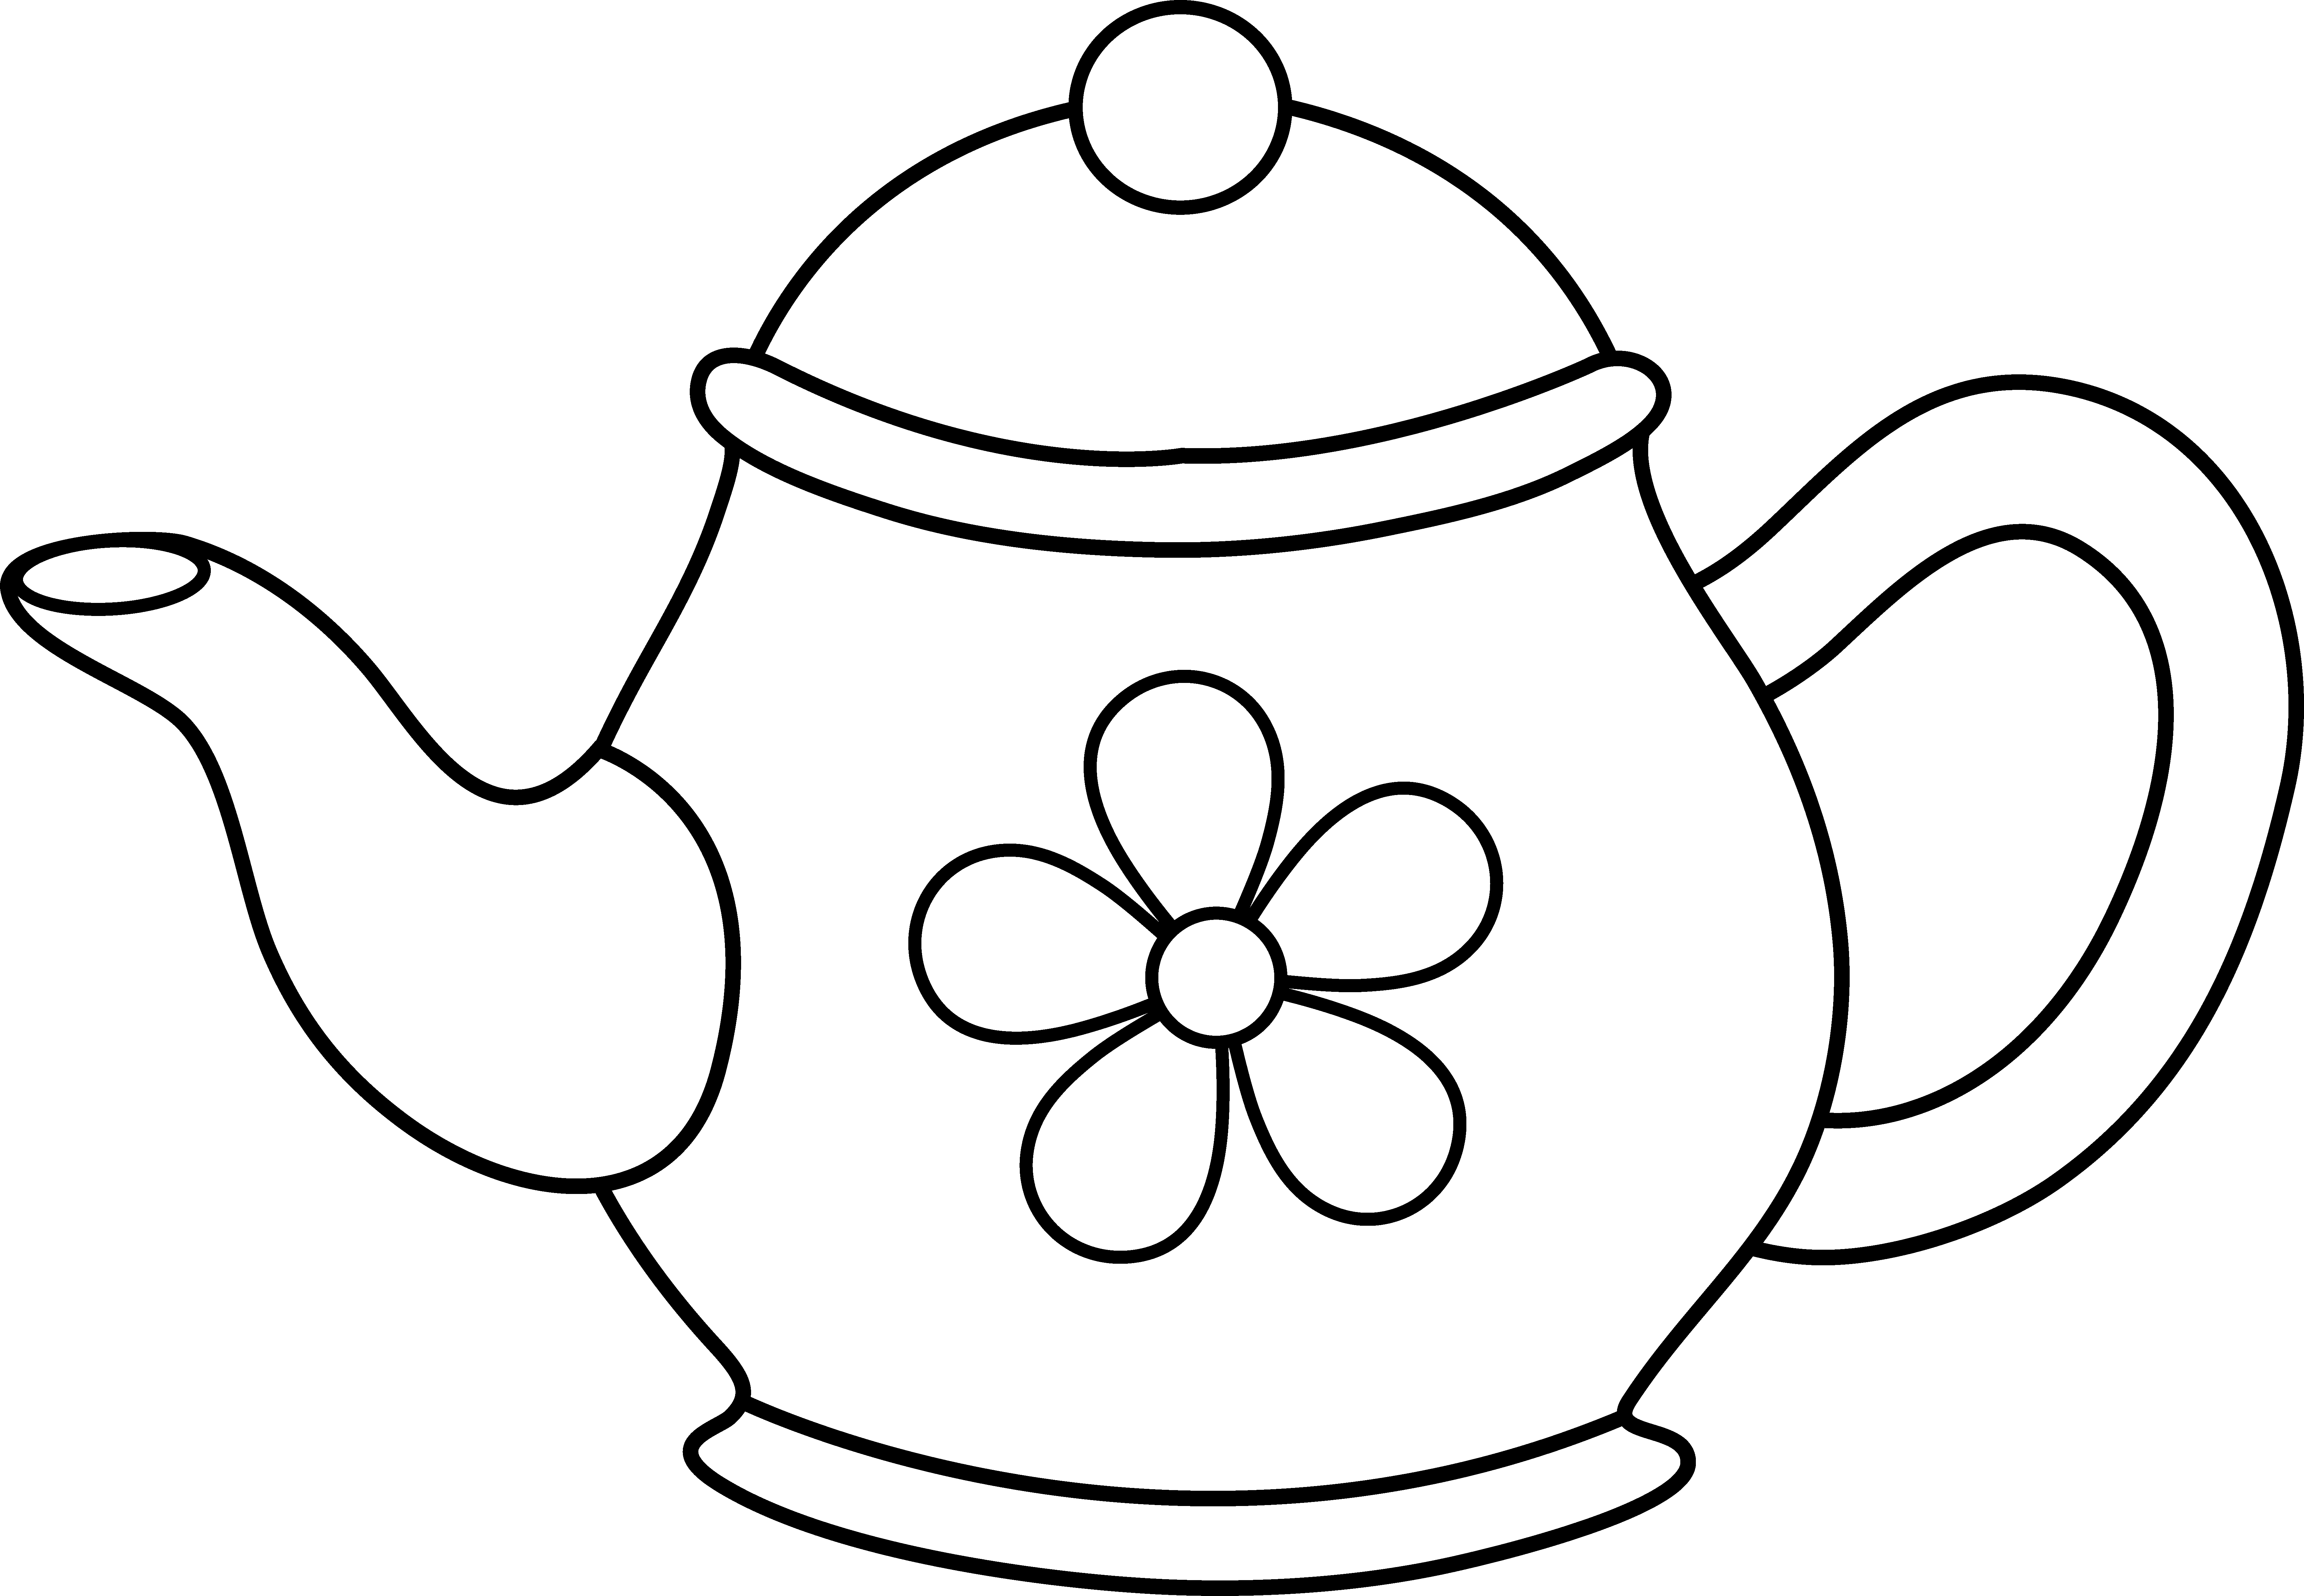 Cute flower clipart black and white. Pot panda free images